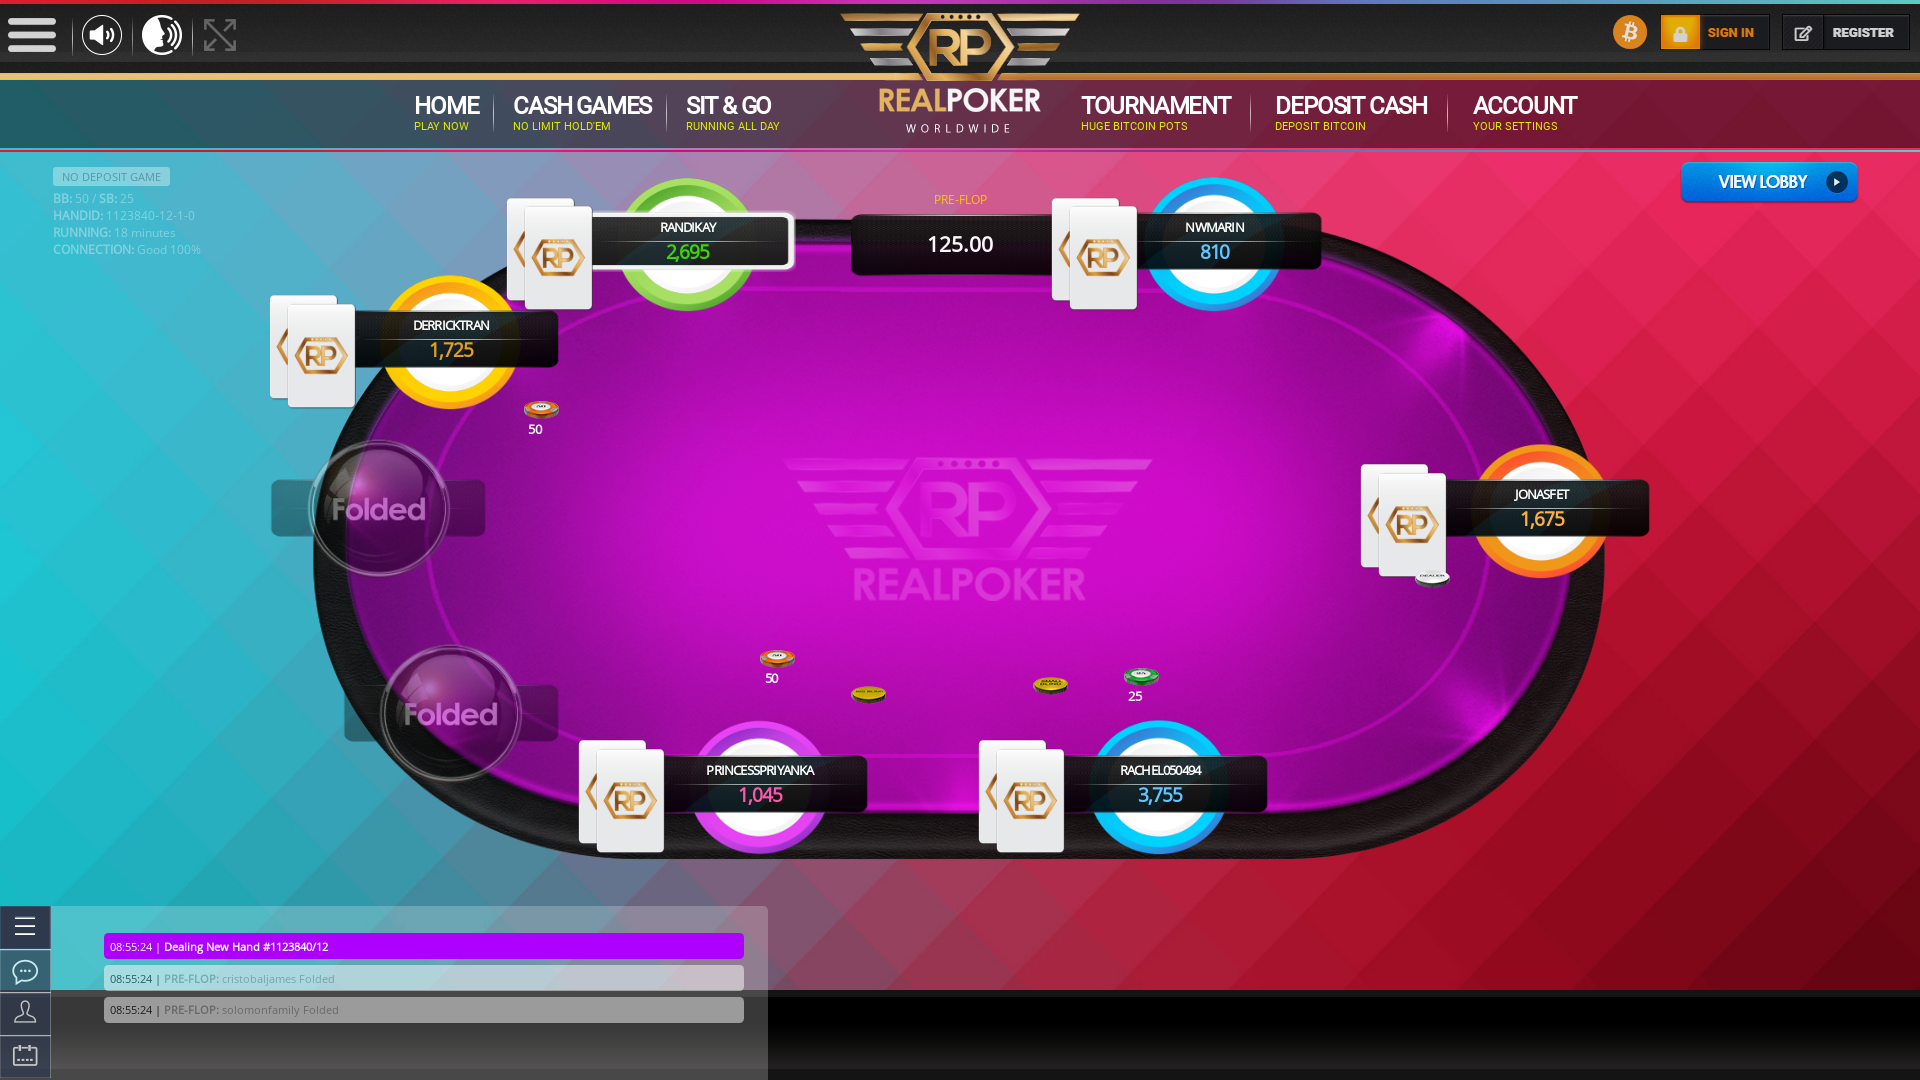 Real poker 10 player table in the 18th minute of the match